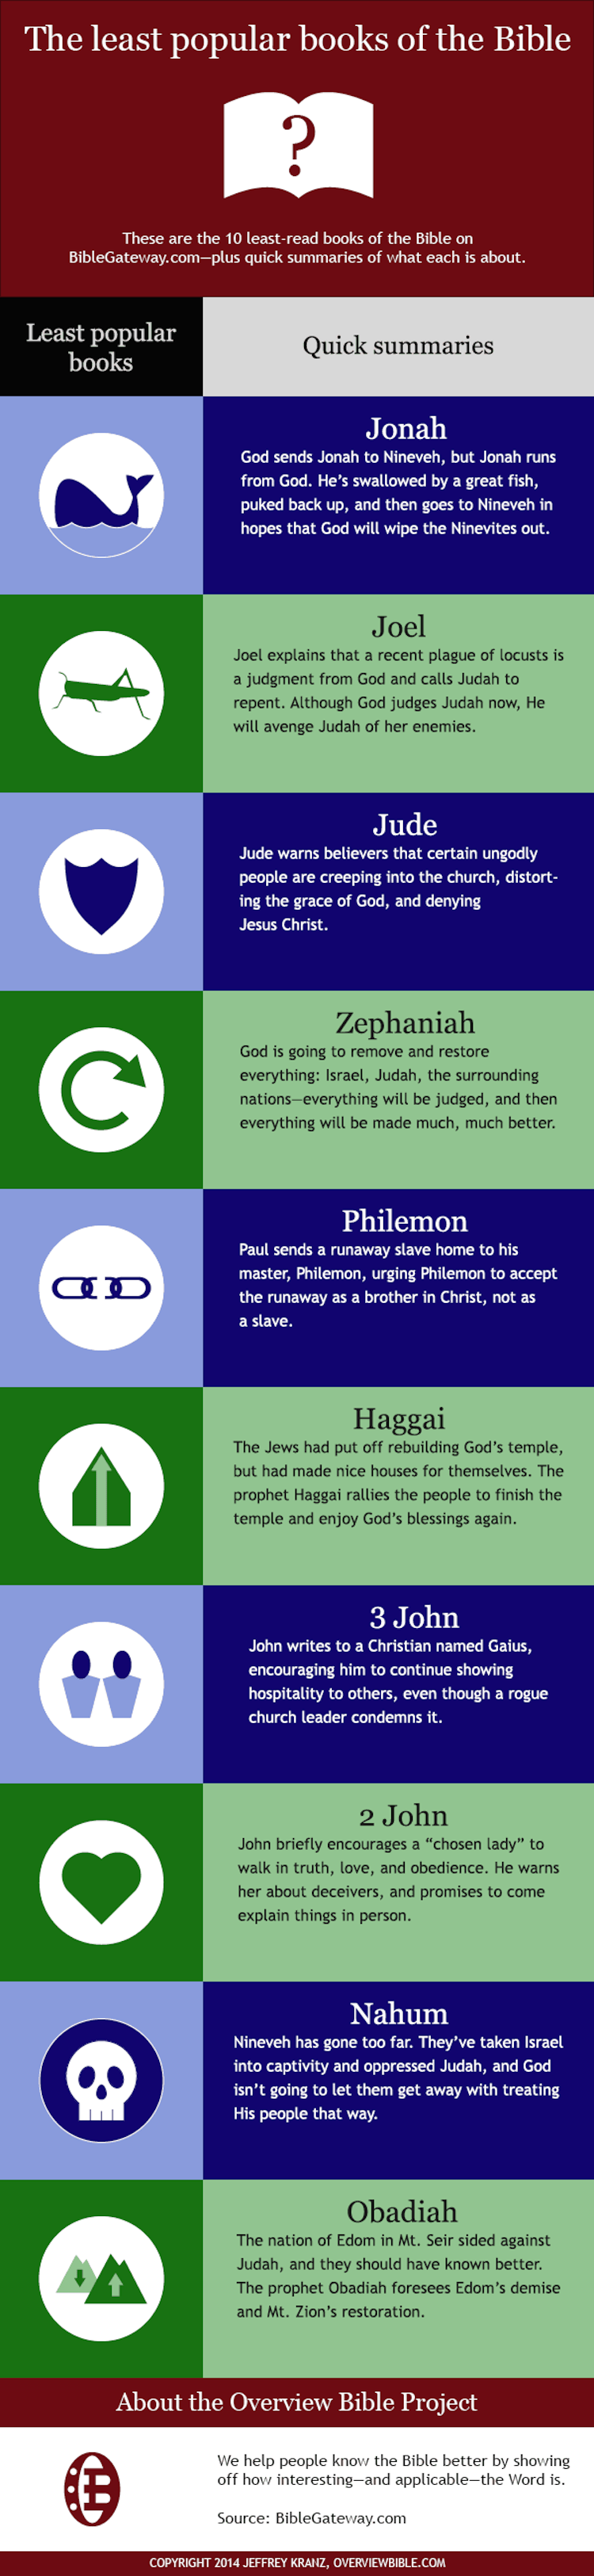 least-popular-books-of-the-bible.infographic